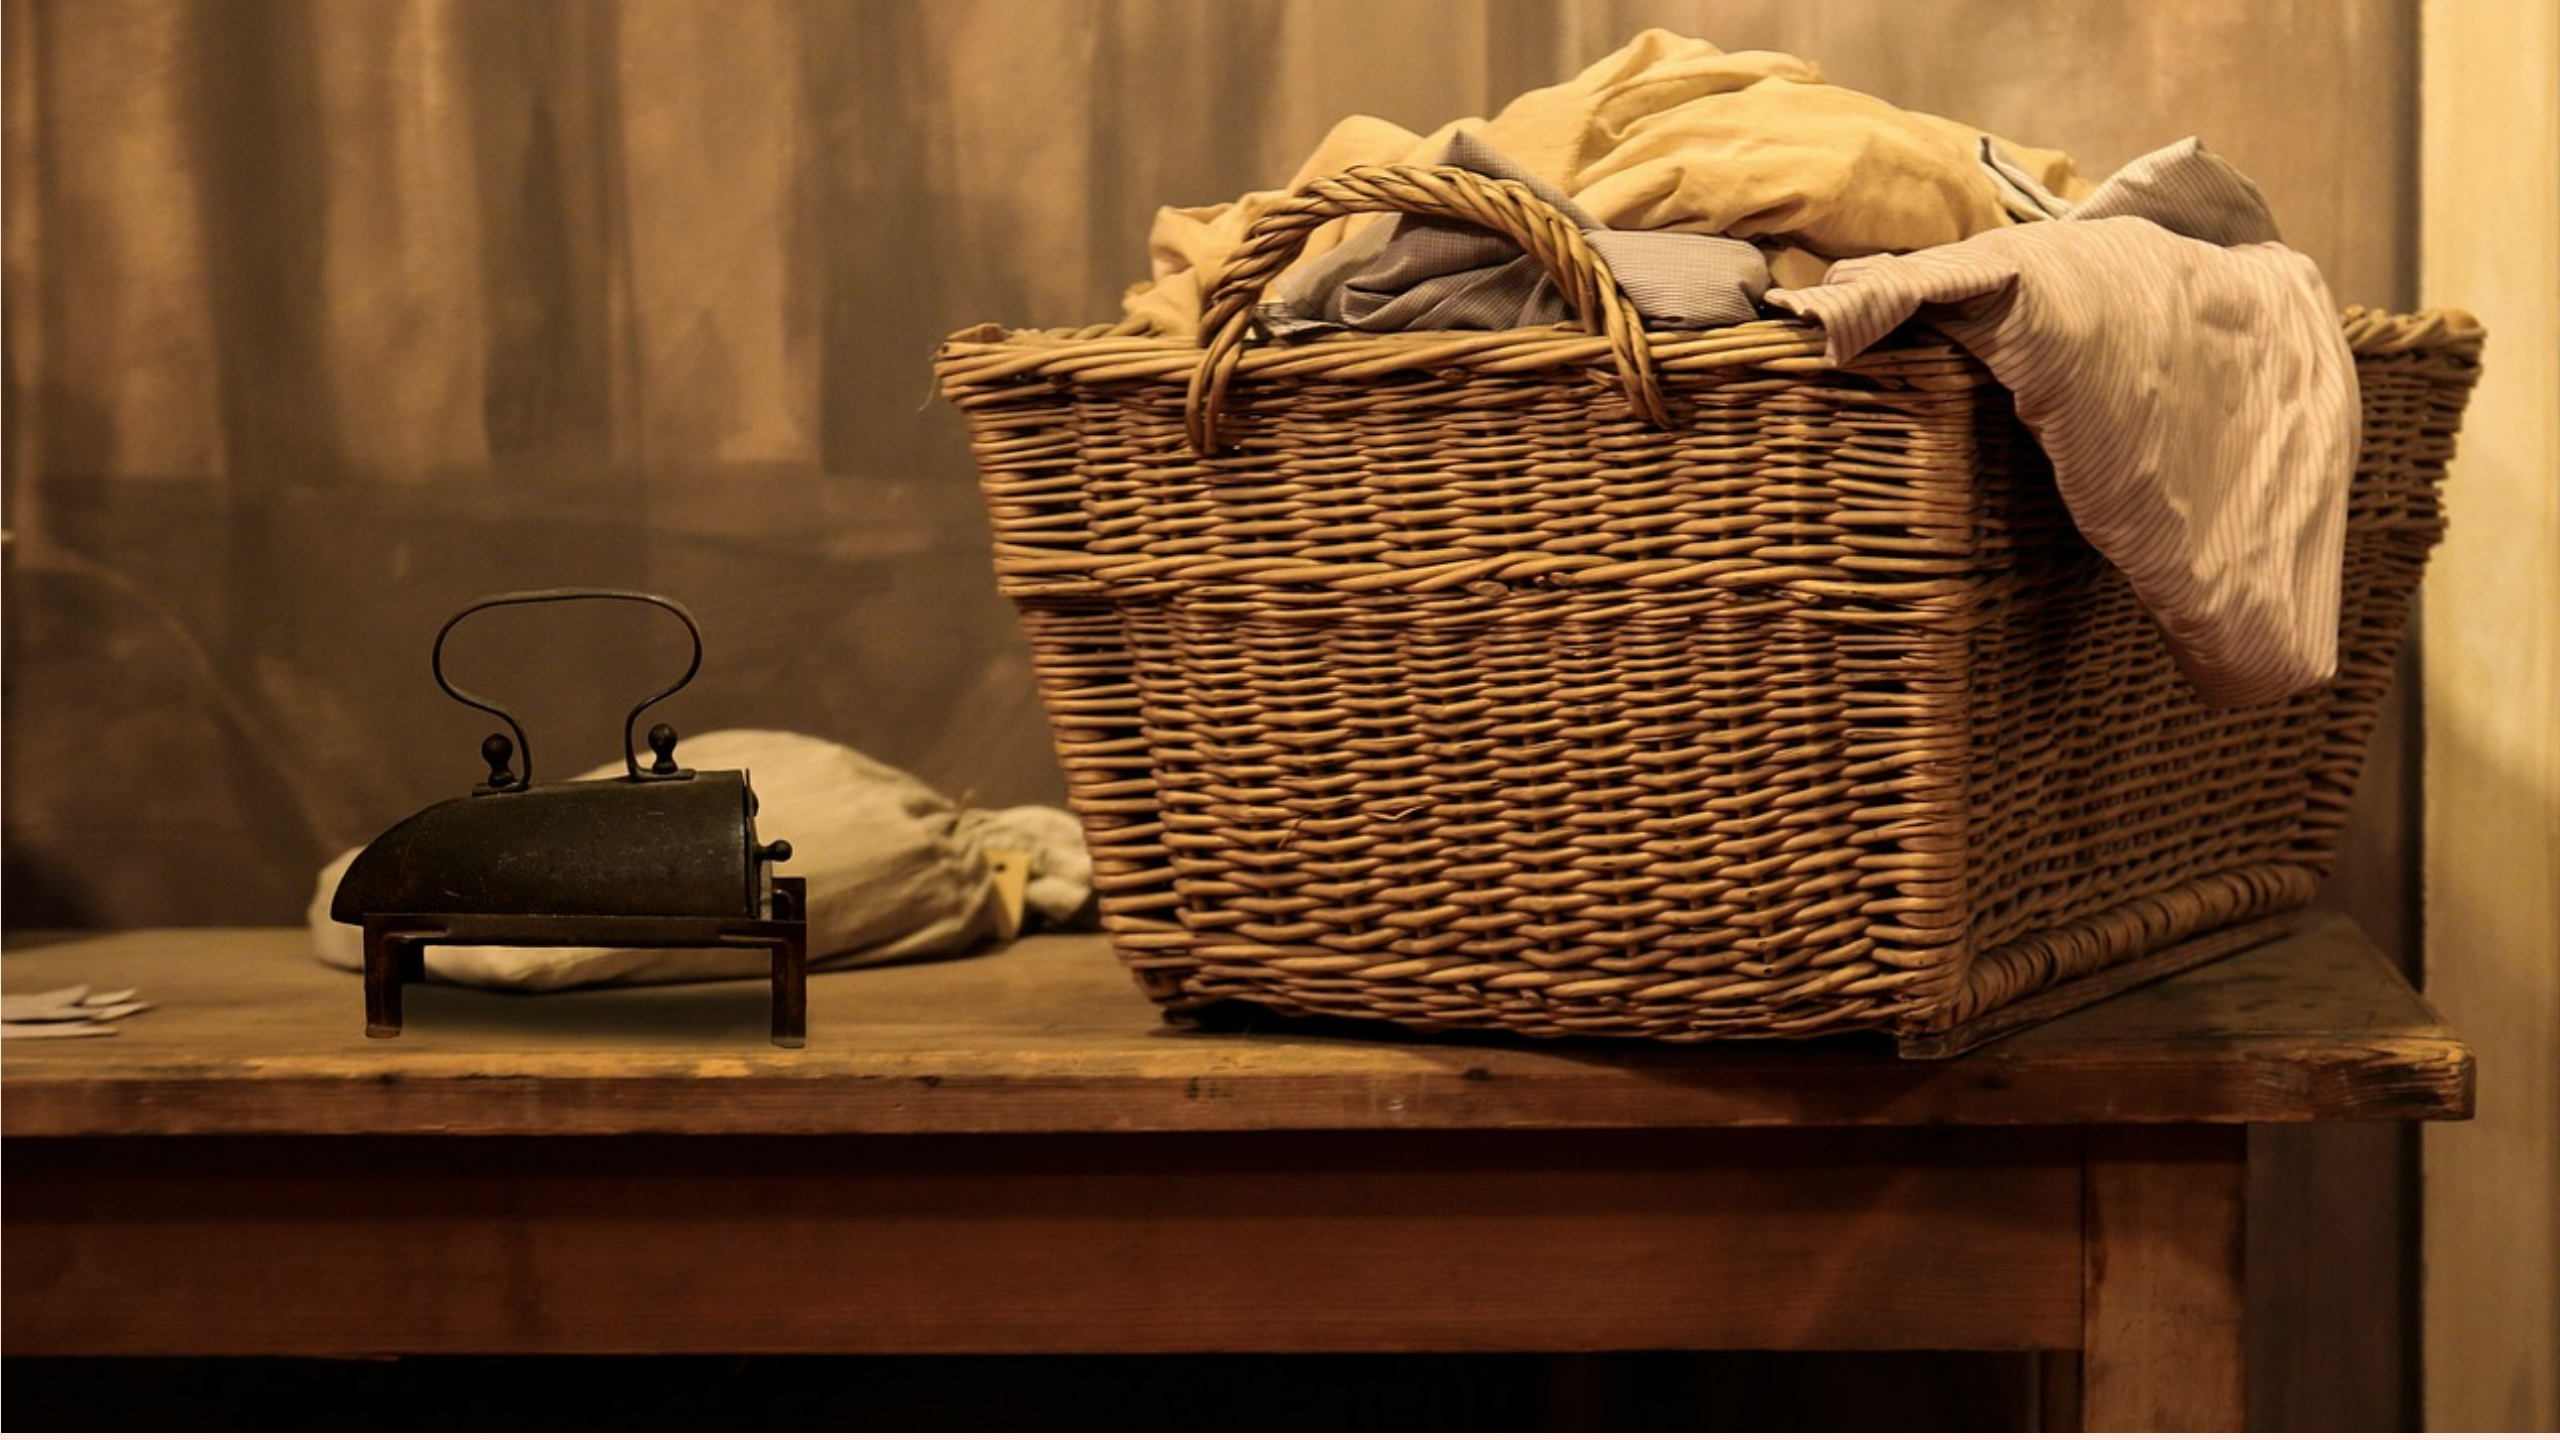 How Laundry Shop helps for dry cleaning services?